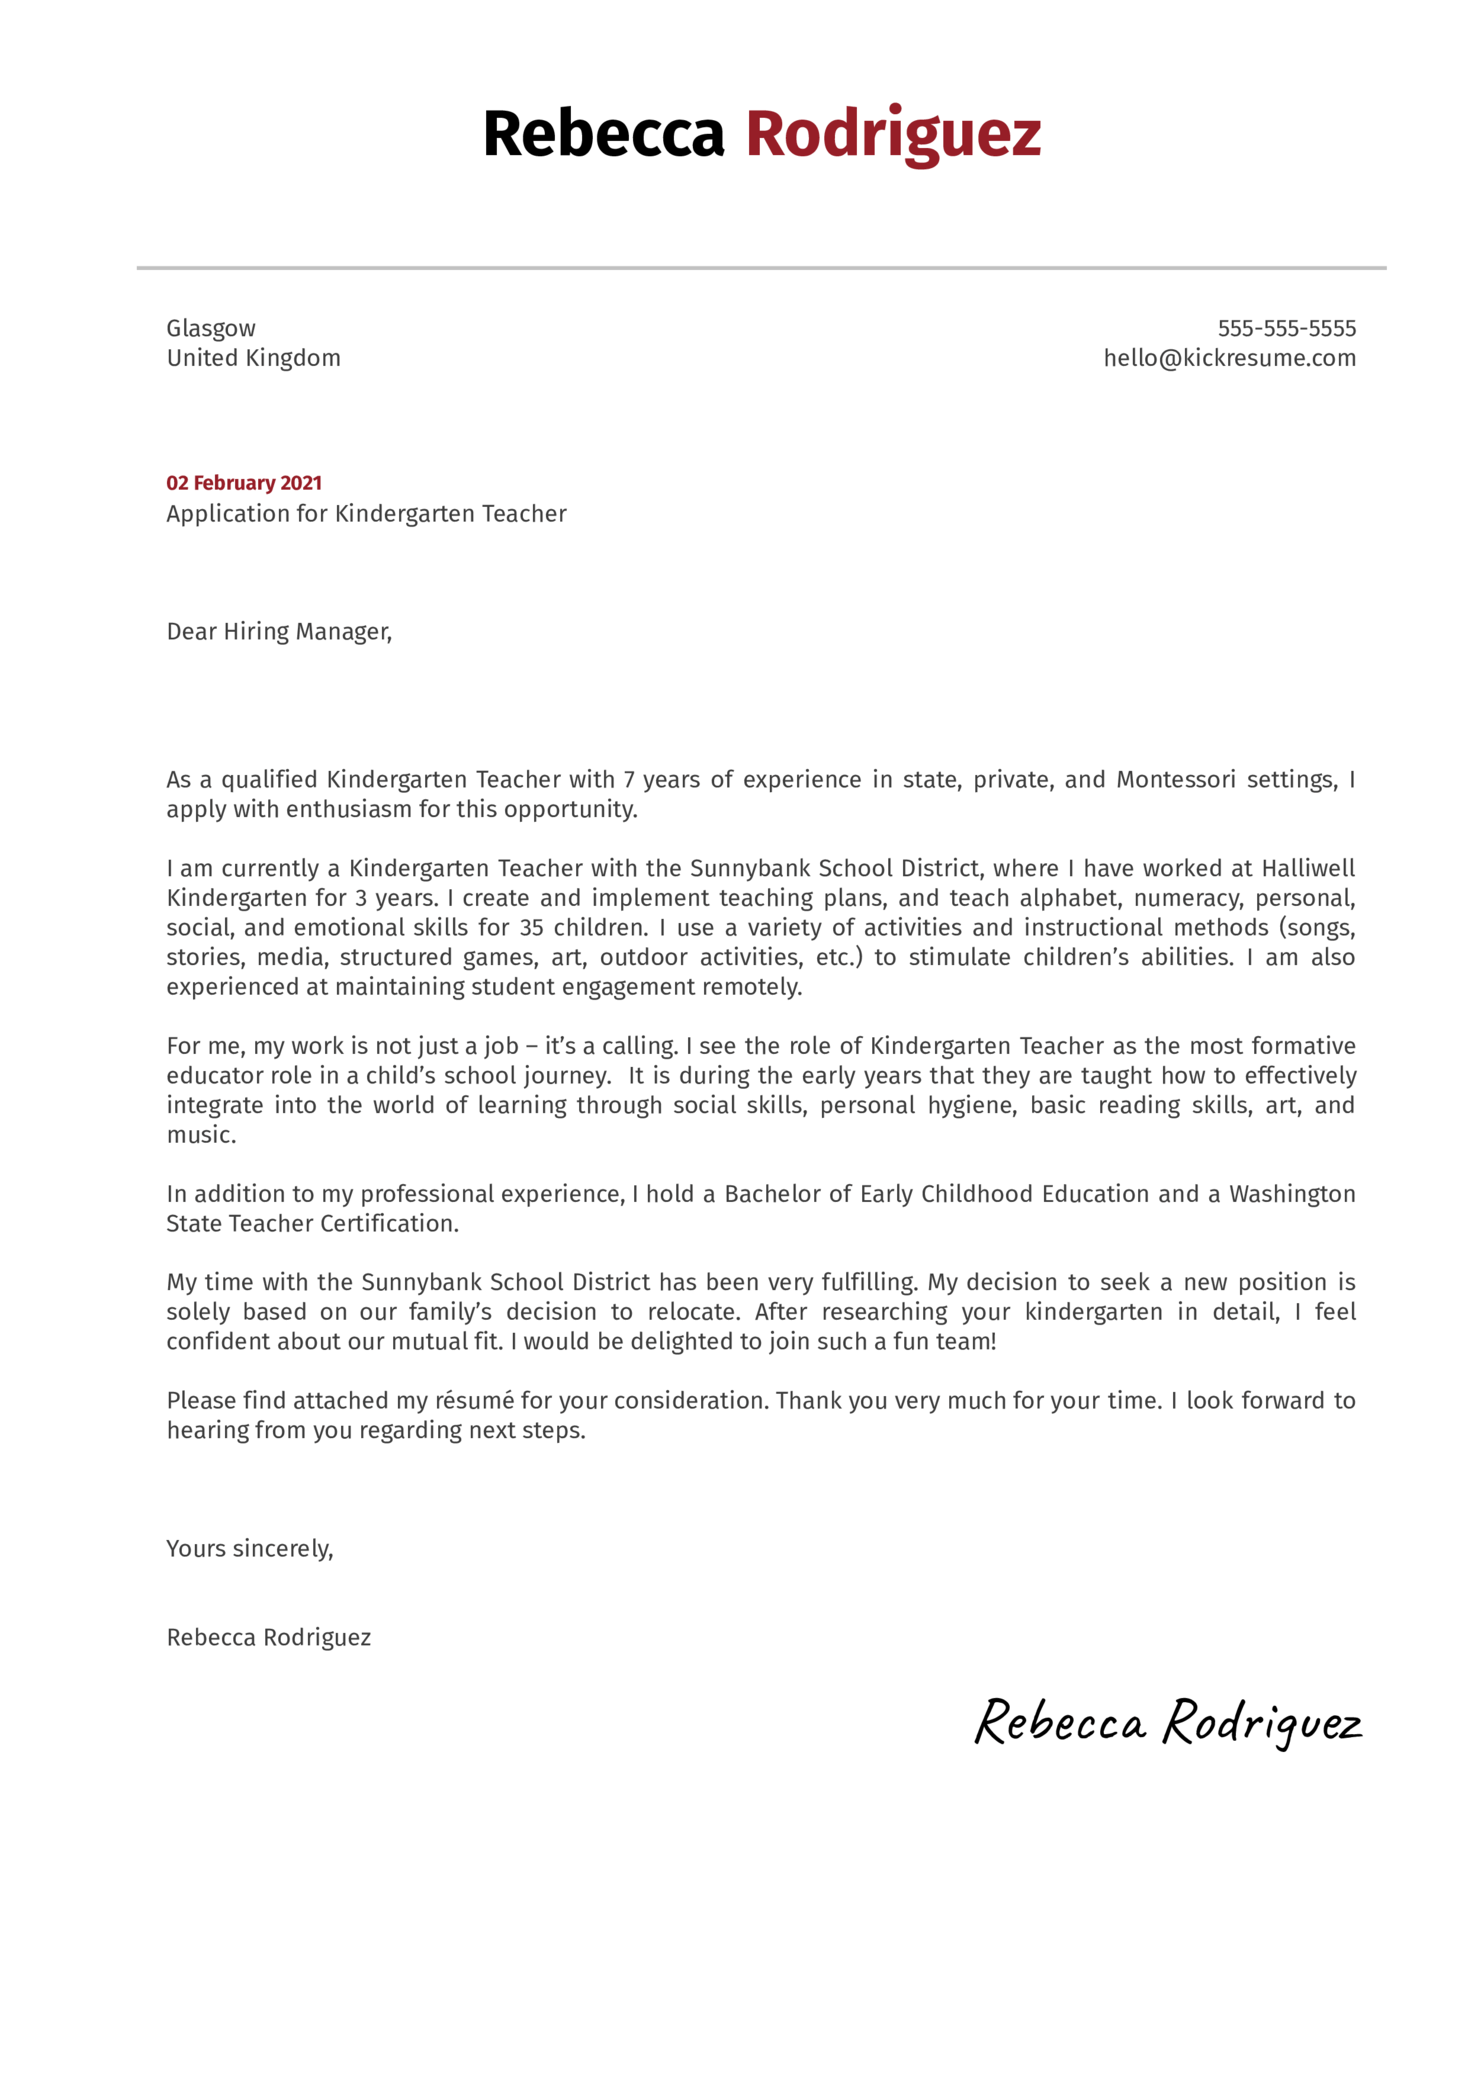 Application Letter For Teacher Teacher Cover Letter Example And Writing Tips When Writing A Cover Letter Be Sure To Reference The Requirements Listed In The I Have Been A Classroom